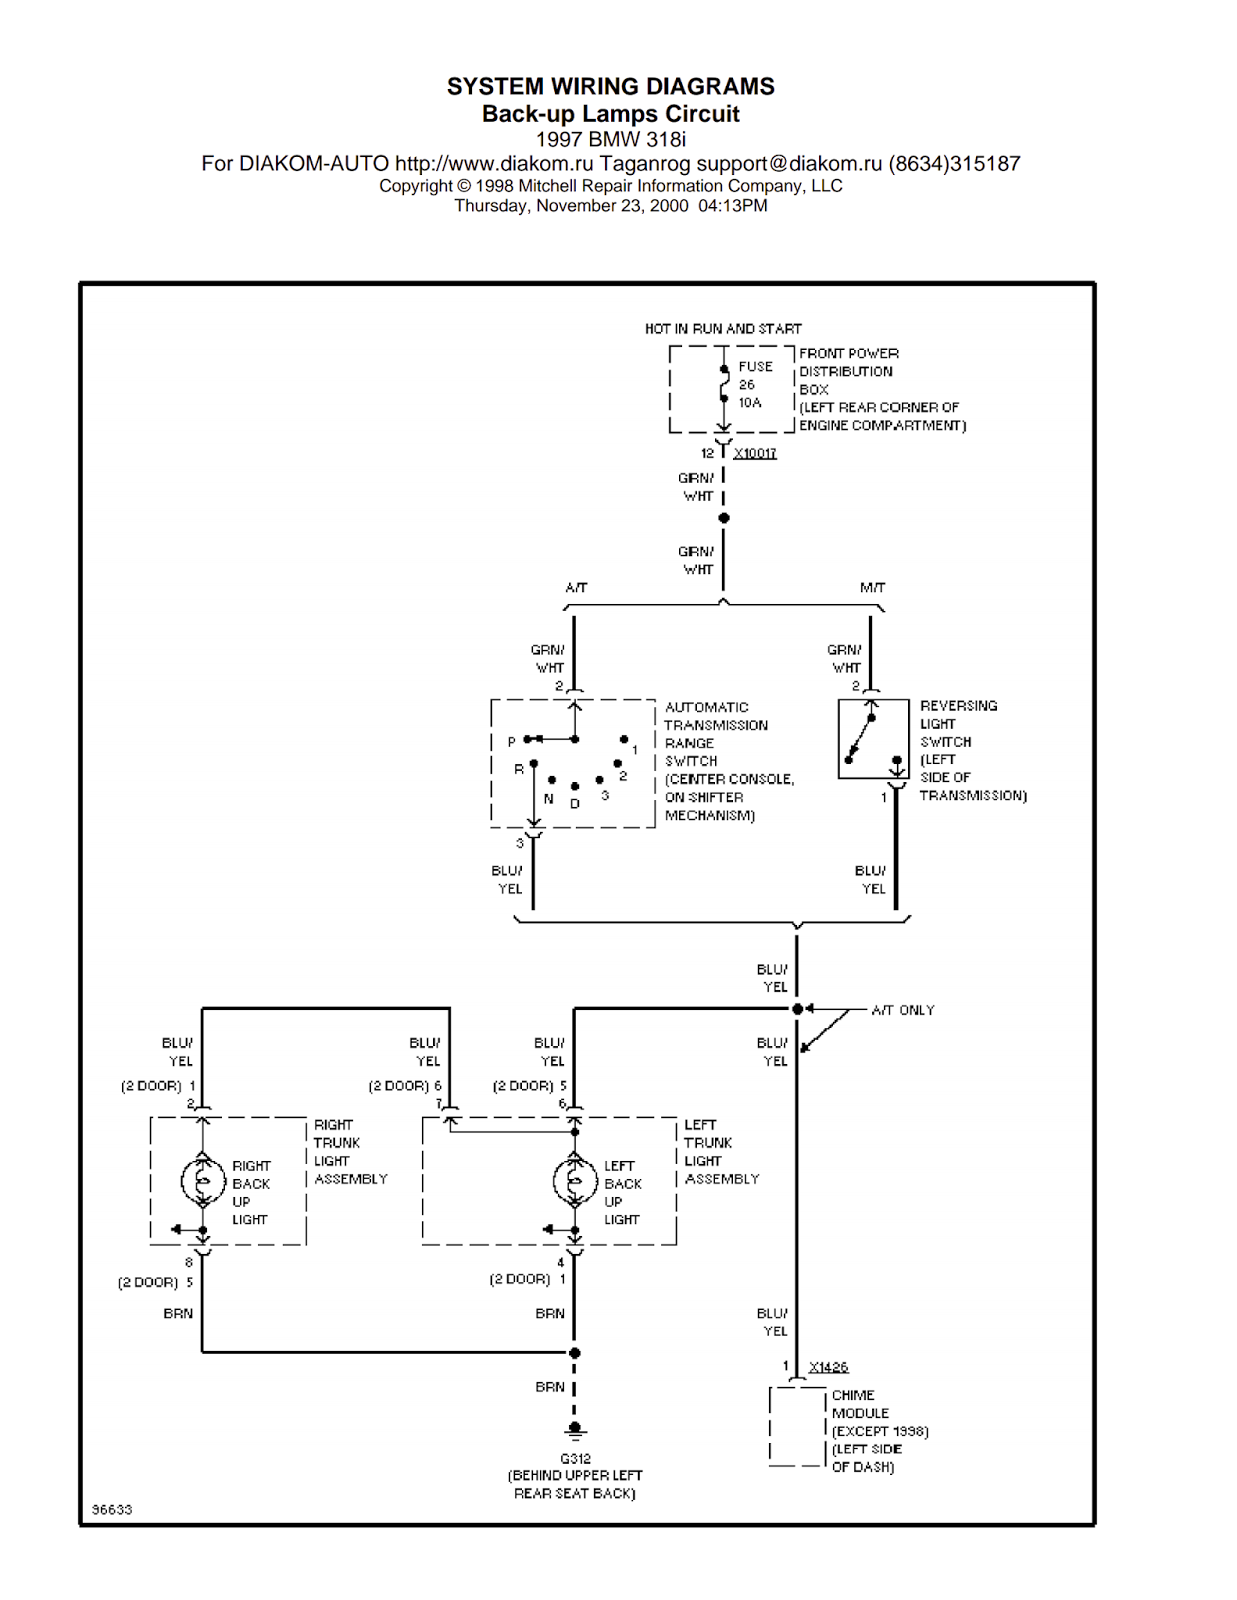 1991 bmw 318i engine diagram wiring diagrams and free manual ebooks: 1997 bmw 318i back ... 1997 318i engine diagram